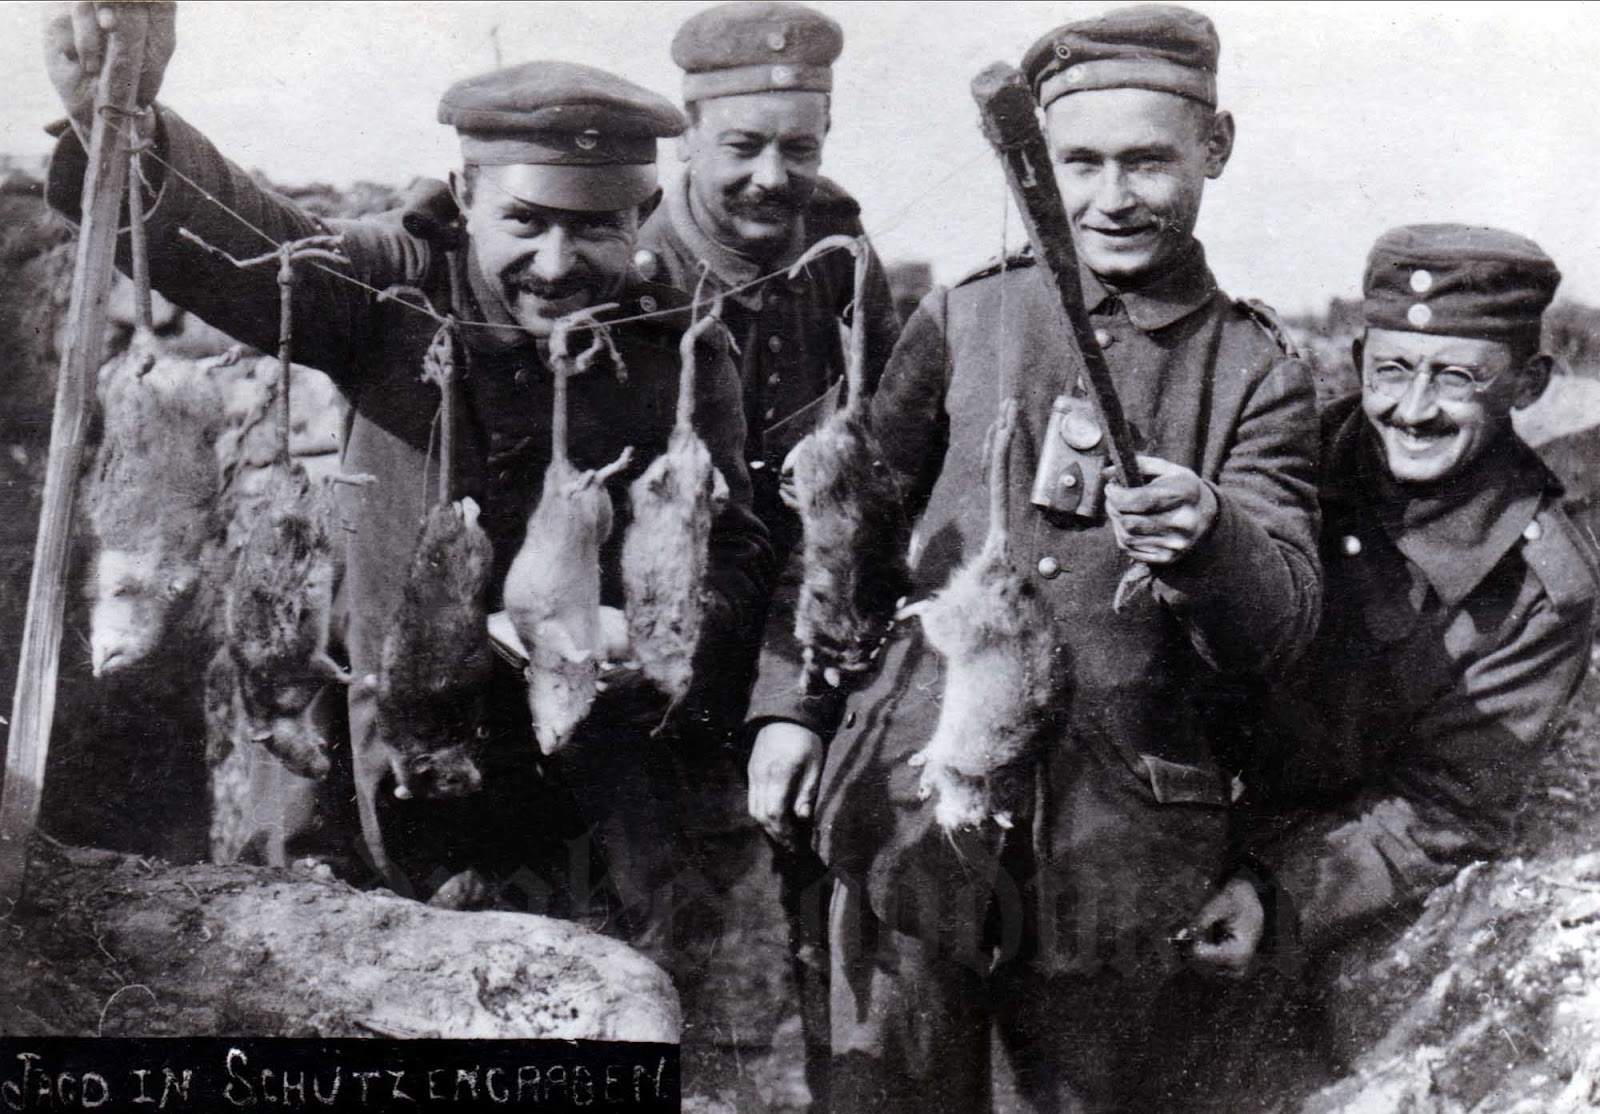 Rats on German trenches. The rat problem remained for the duration of the war (although many veteran soldiers swore that rats sensed impending heavy enemy shellfire and consequently disappeared from view).